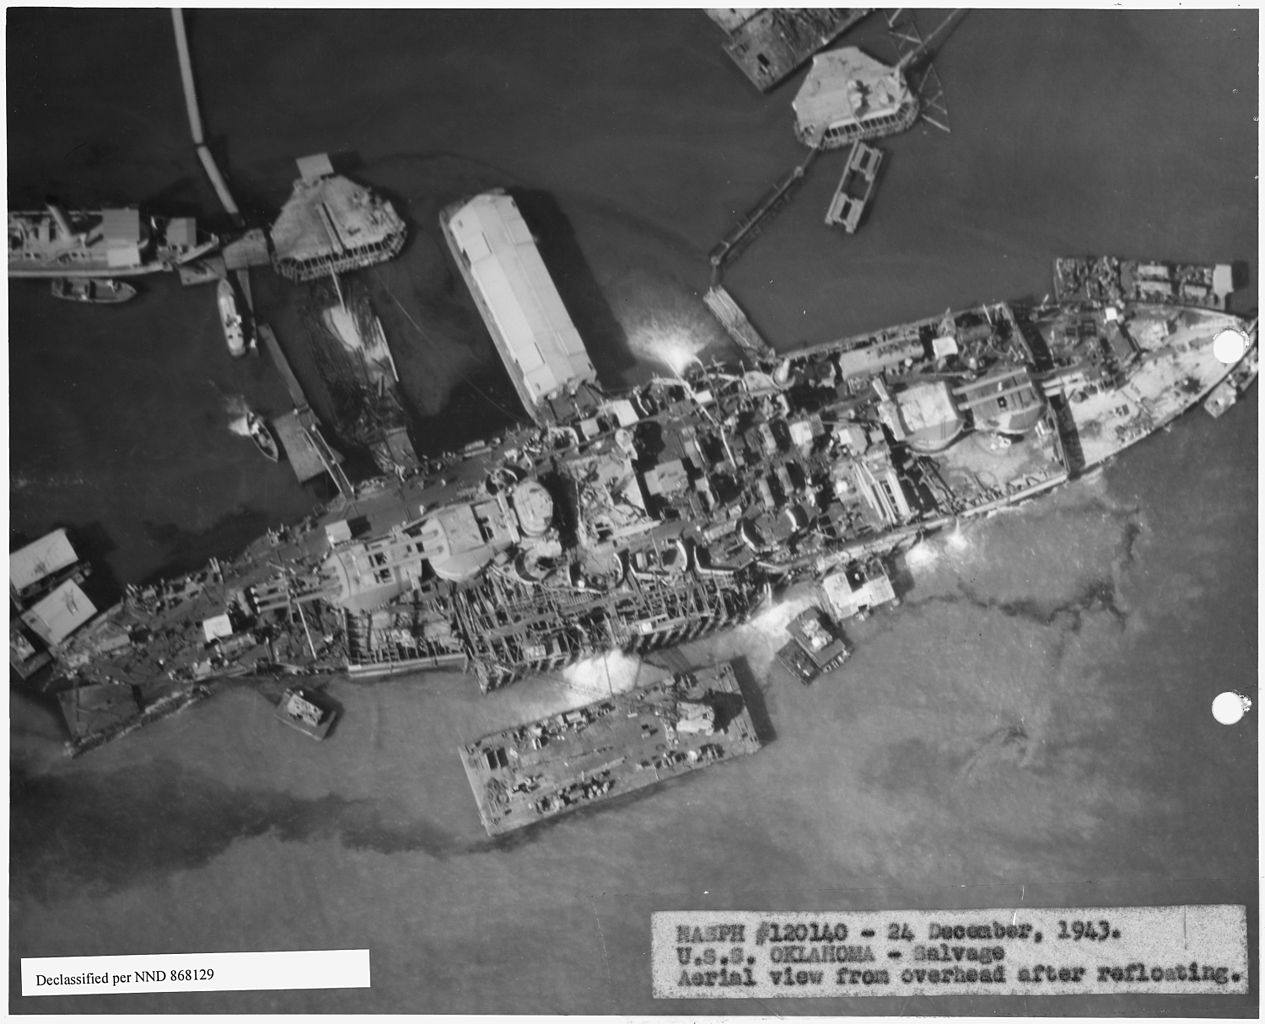 U.S.S. Oklahoma salvage, aerial view from overhead after refloating.